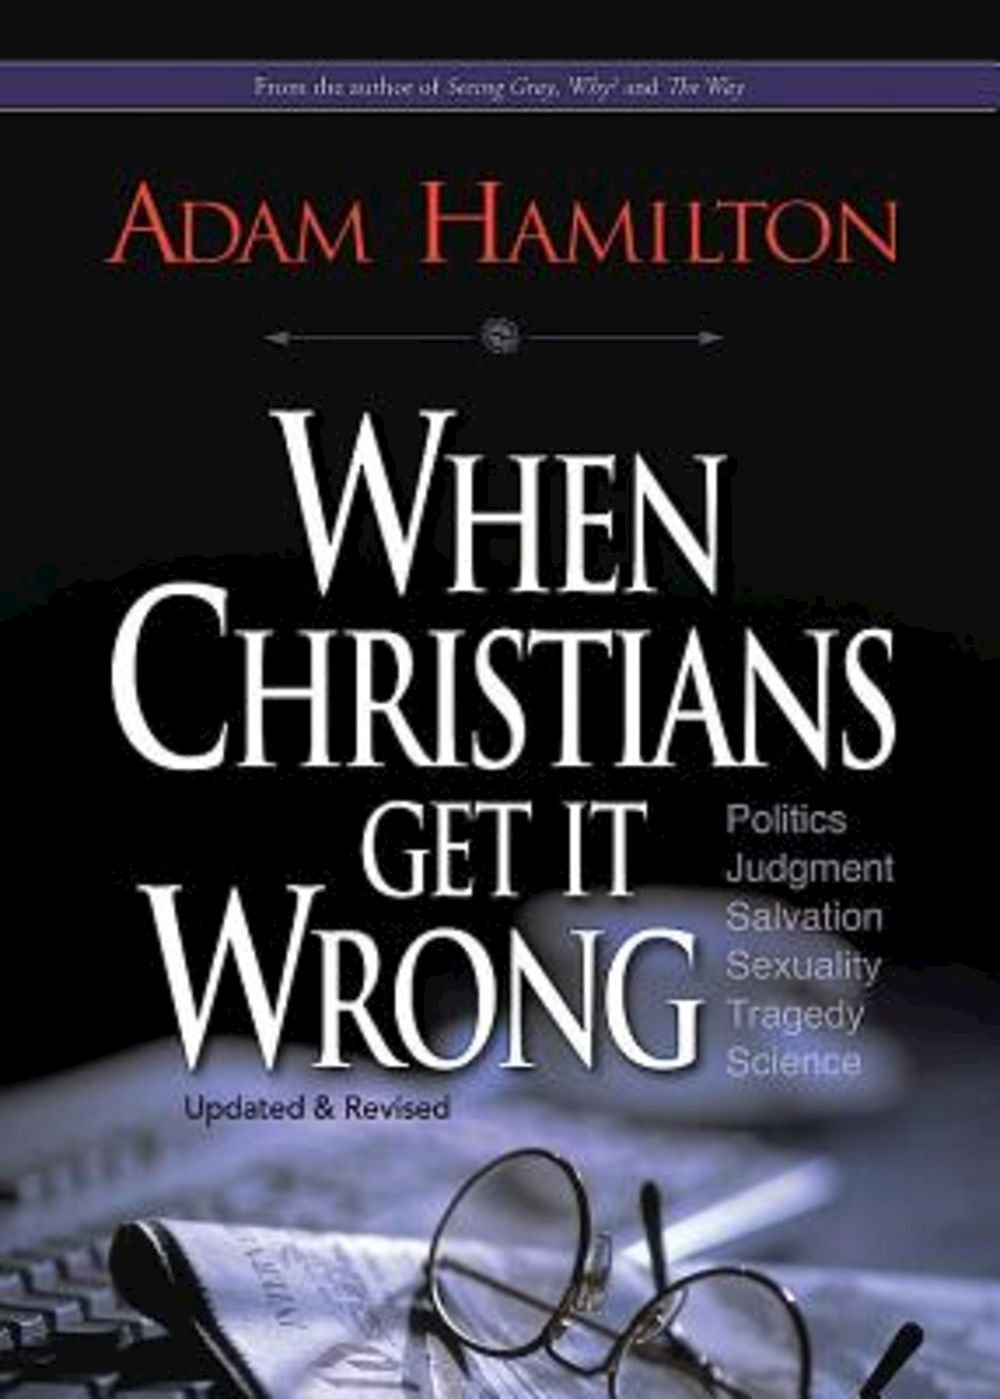 when christians get it wrong revised adam hamilton